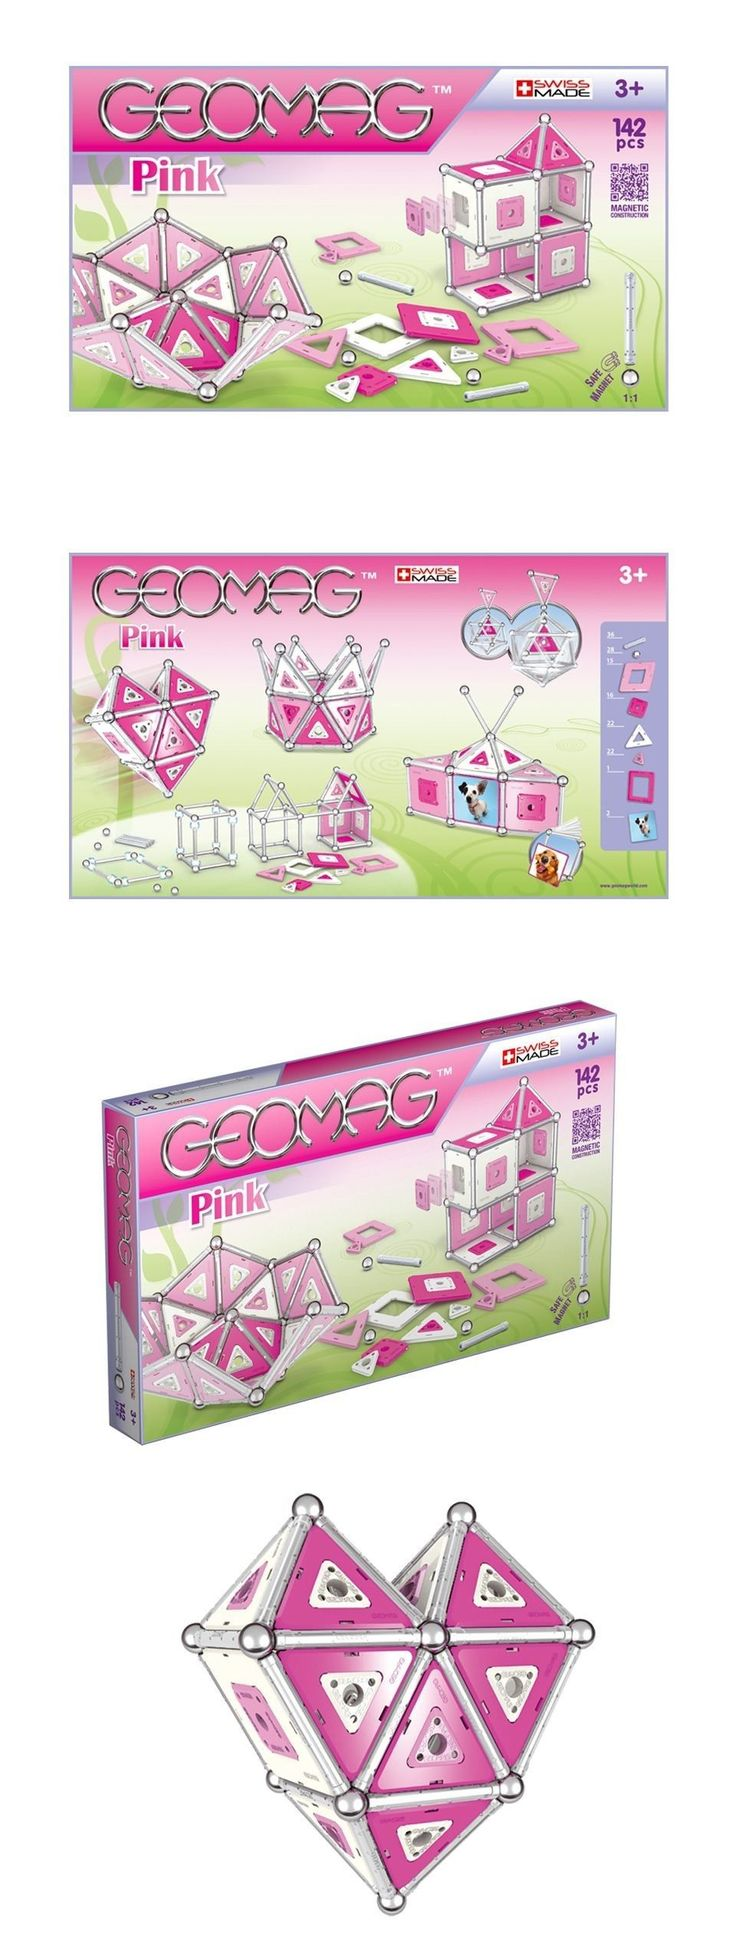 Geomag 73248: Geomag Kids Pink Panels 142 Constuction System Magnetic Toy Set - Swiss Made -> BUY IT NOW ONLY: $89 on eBay!